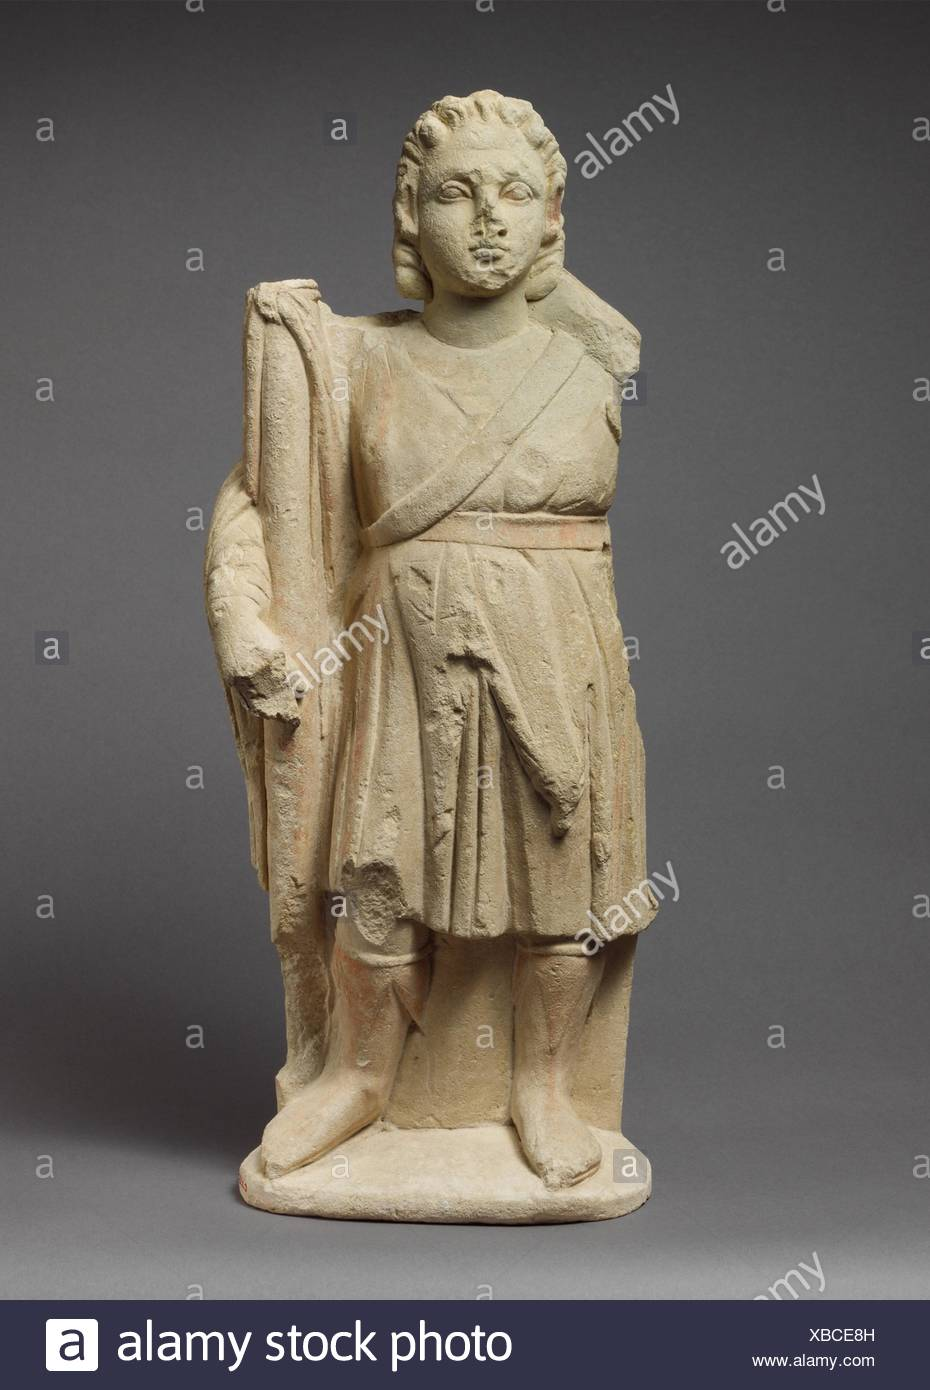 Limestone statuette of Dionysos holding a thyrsos. Period: Hellenistic; Date: 310-30 B.C; Culture: Cypriot; Medium: Limestone; Dimensions: H. 20 1/2 Stock Photo